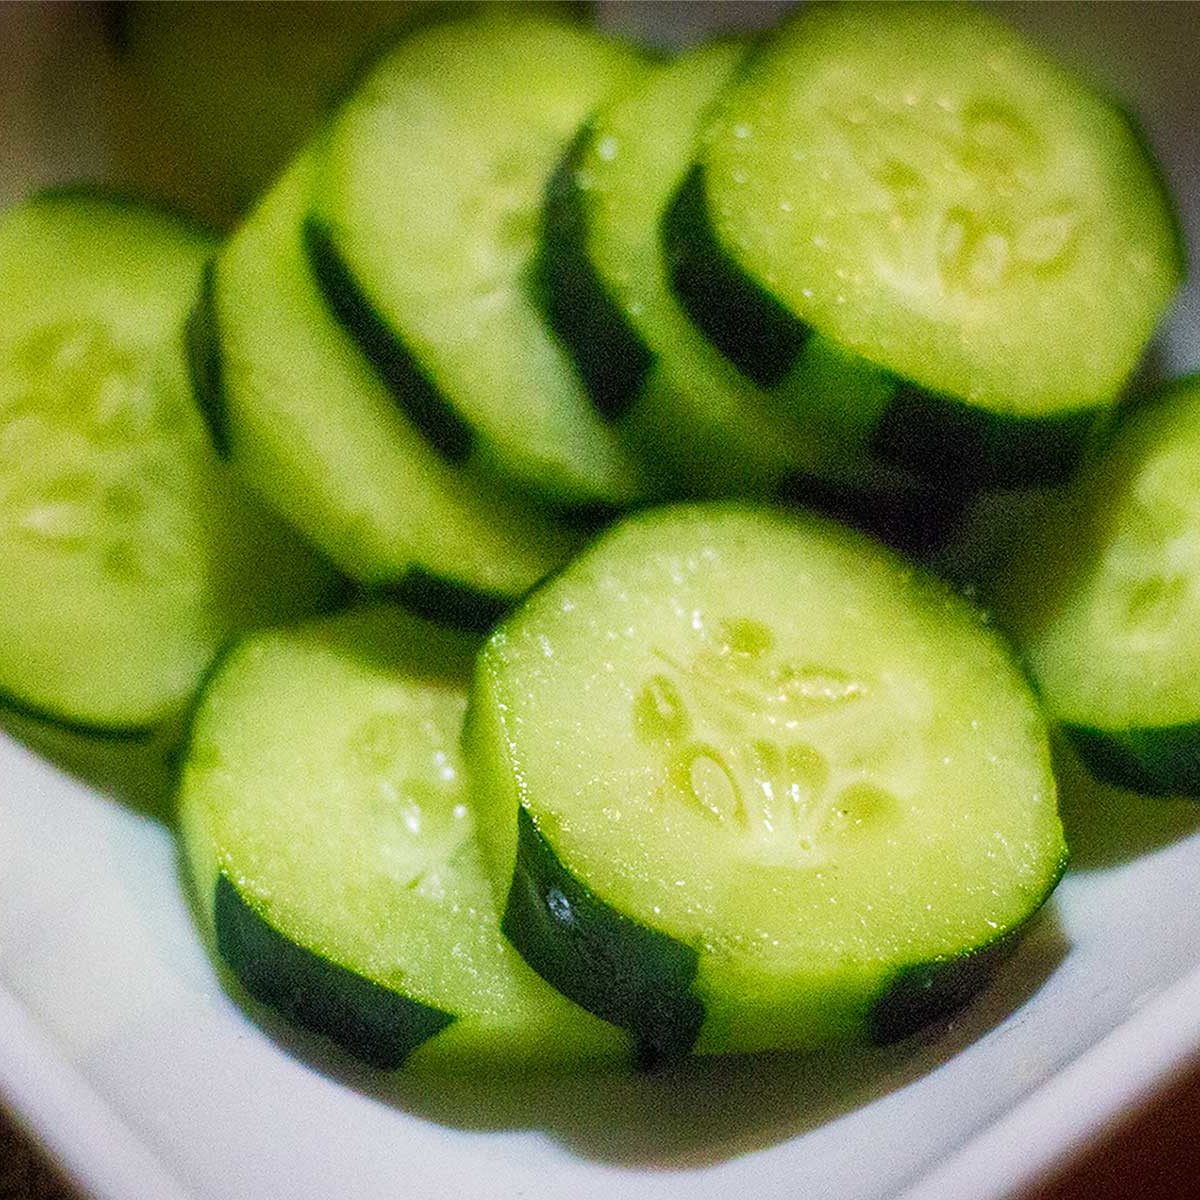 Photo of cucumber slices on a plate